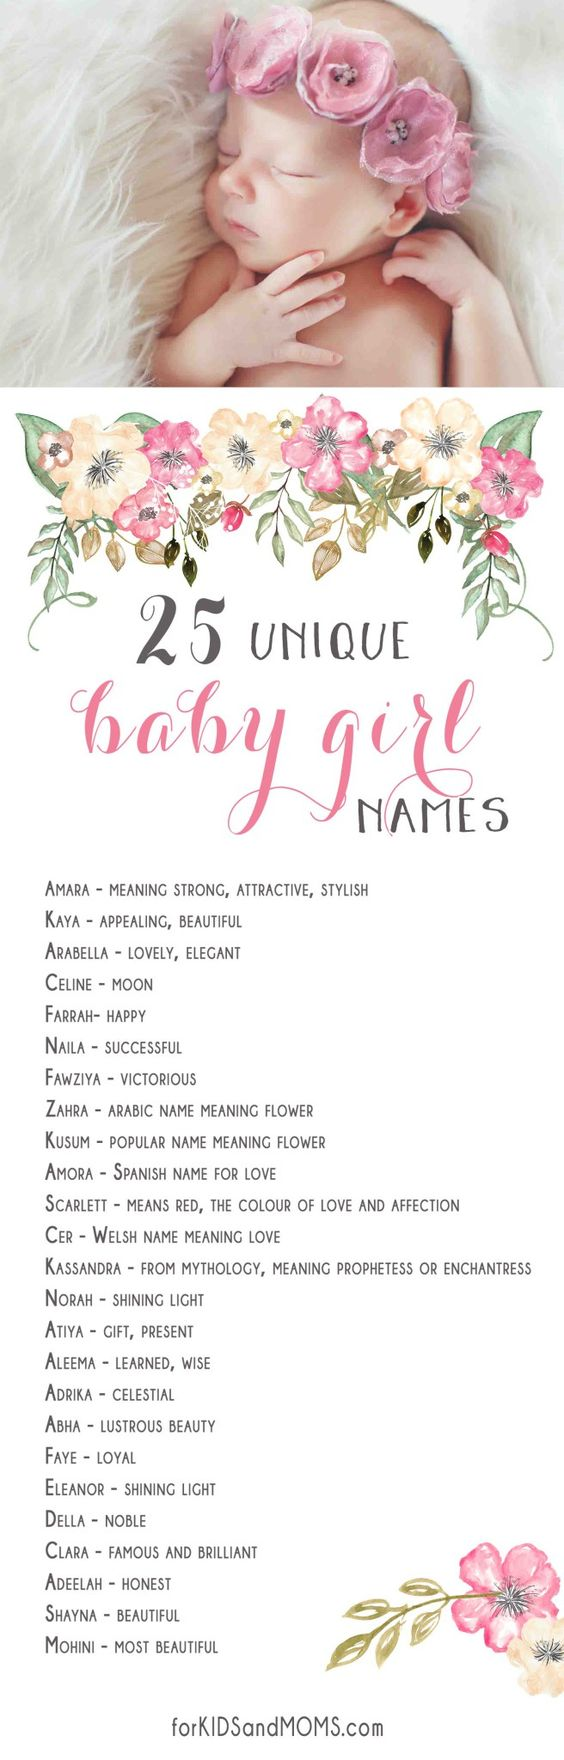 Girl names meaning beauty